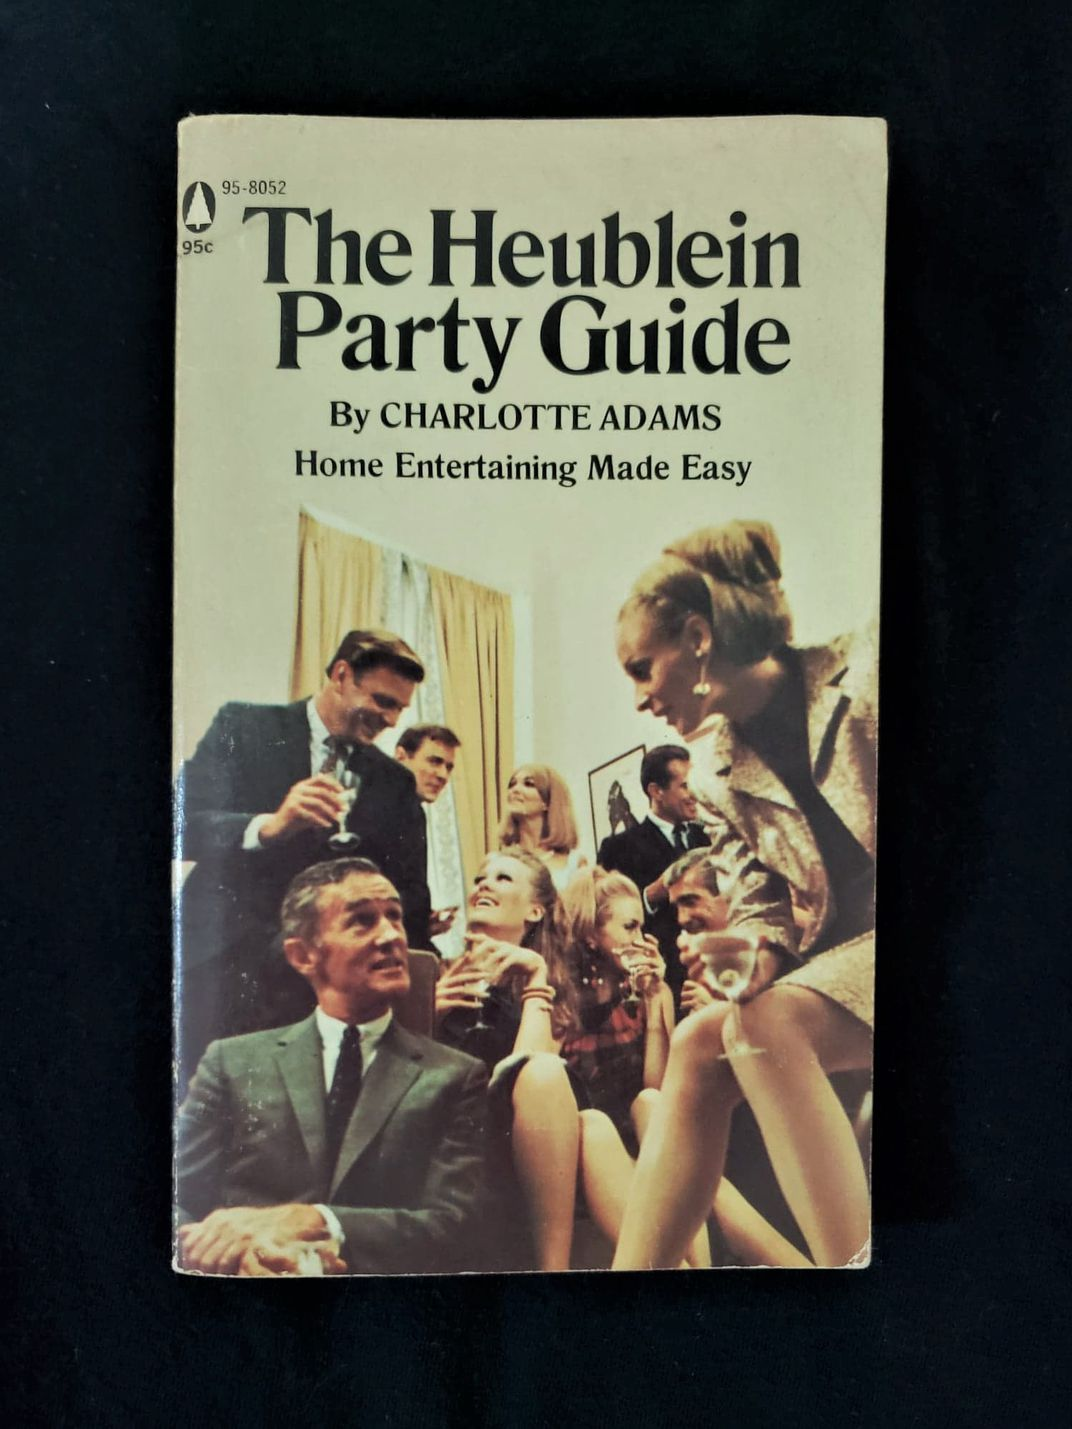 The Heublein Party Guide (cover).jpg